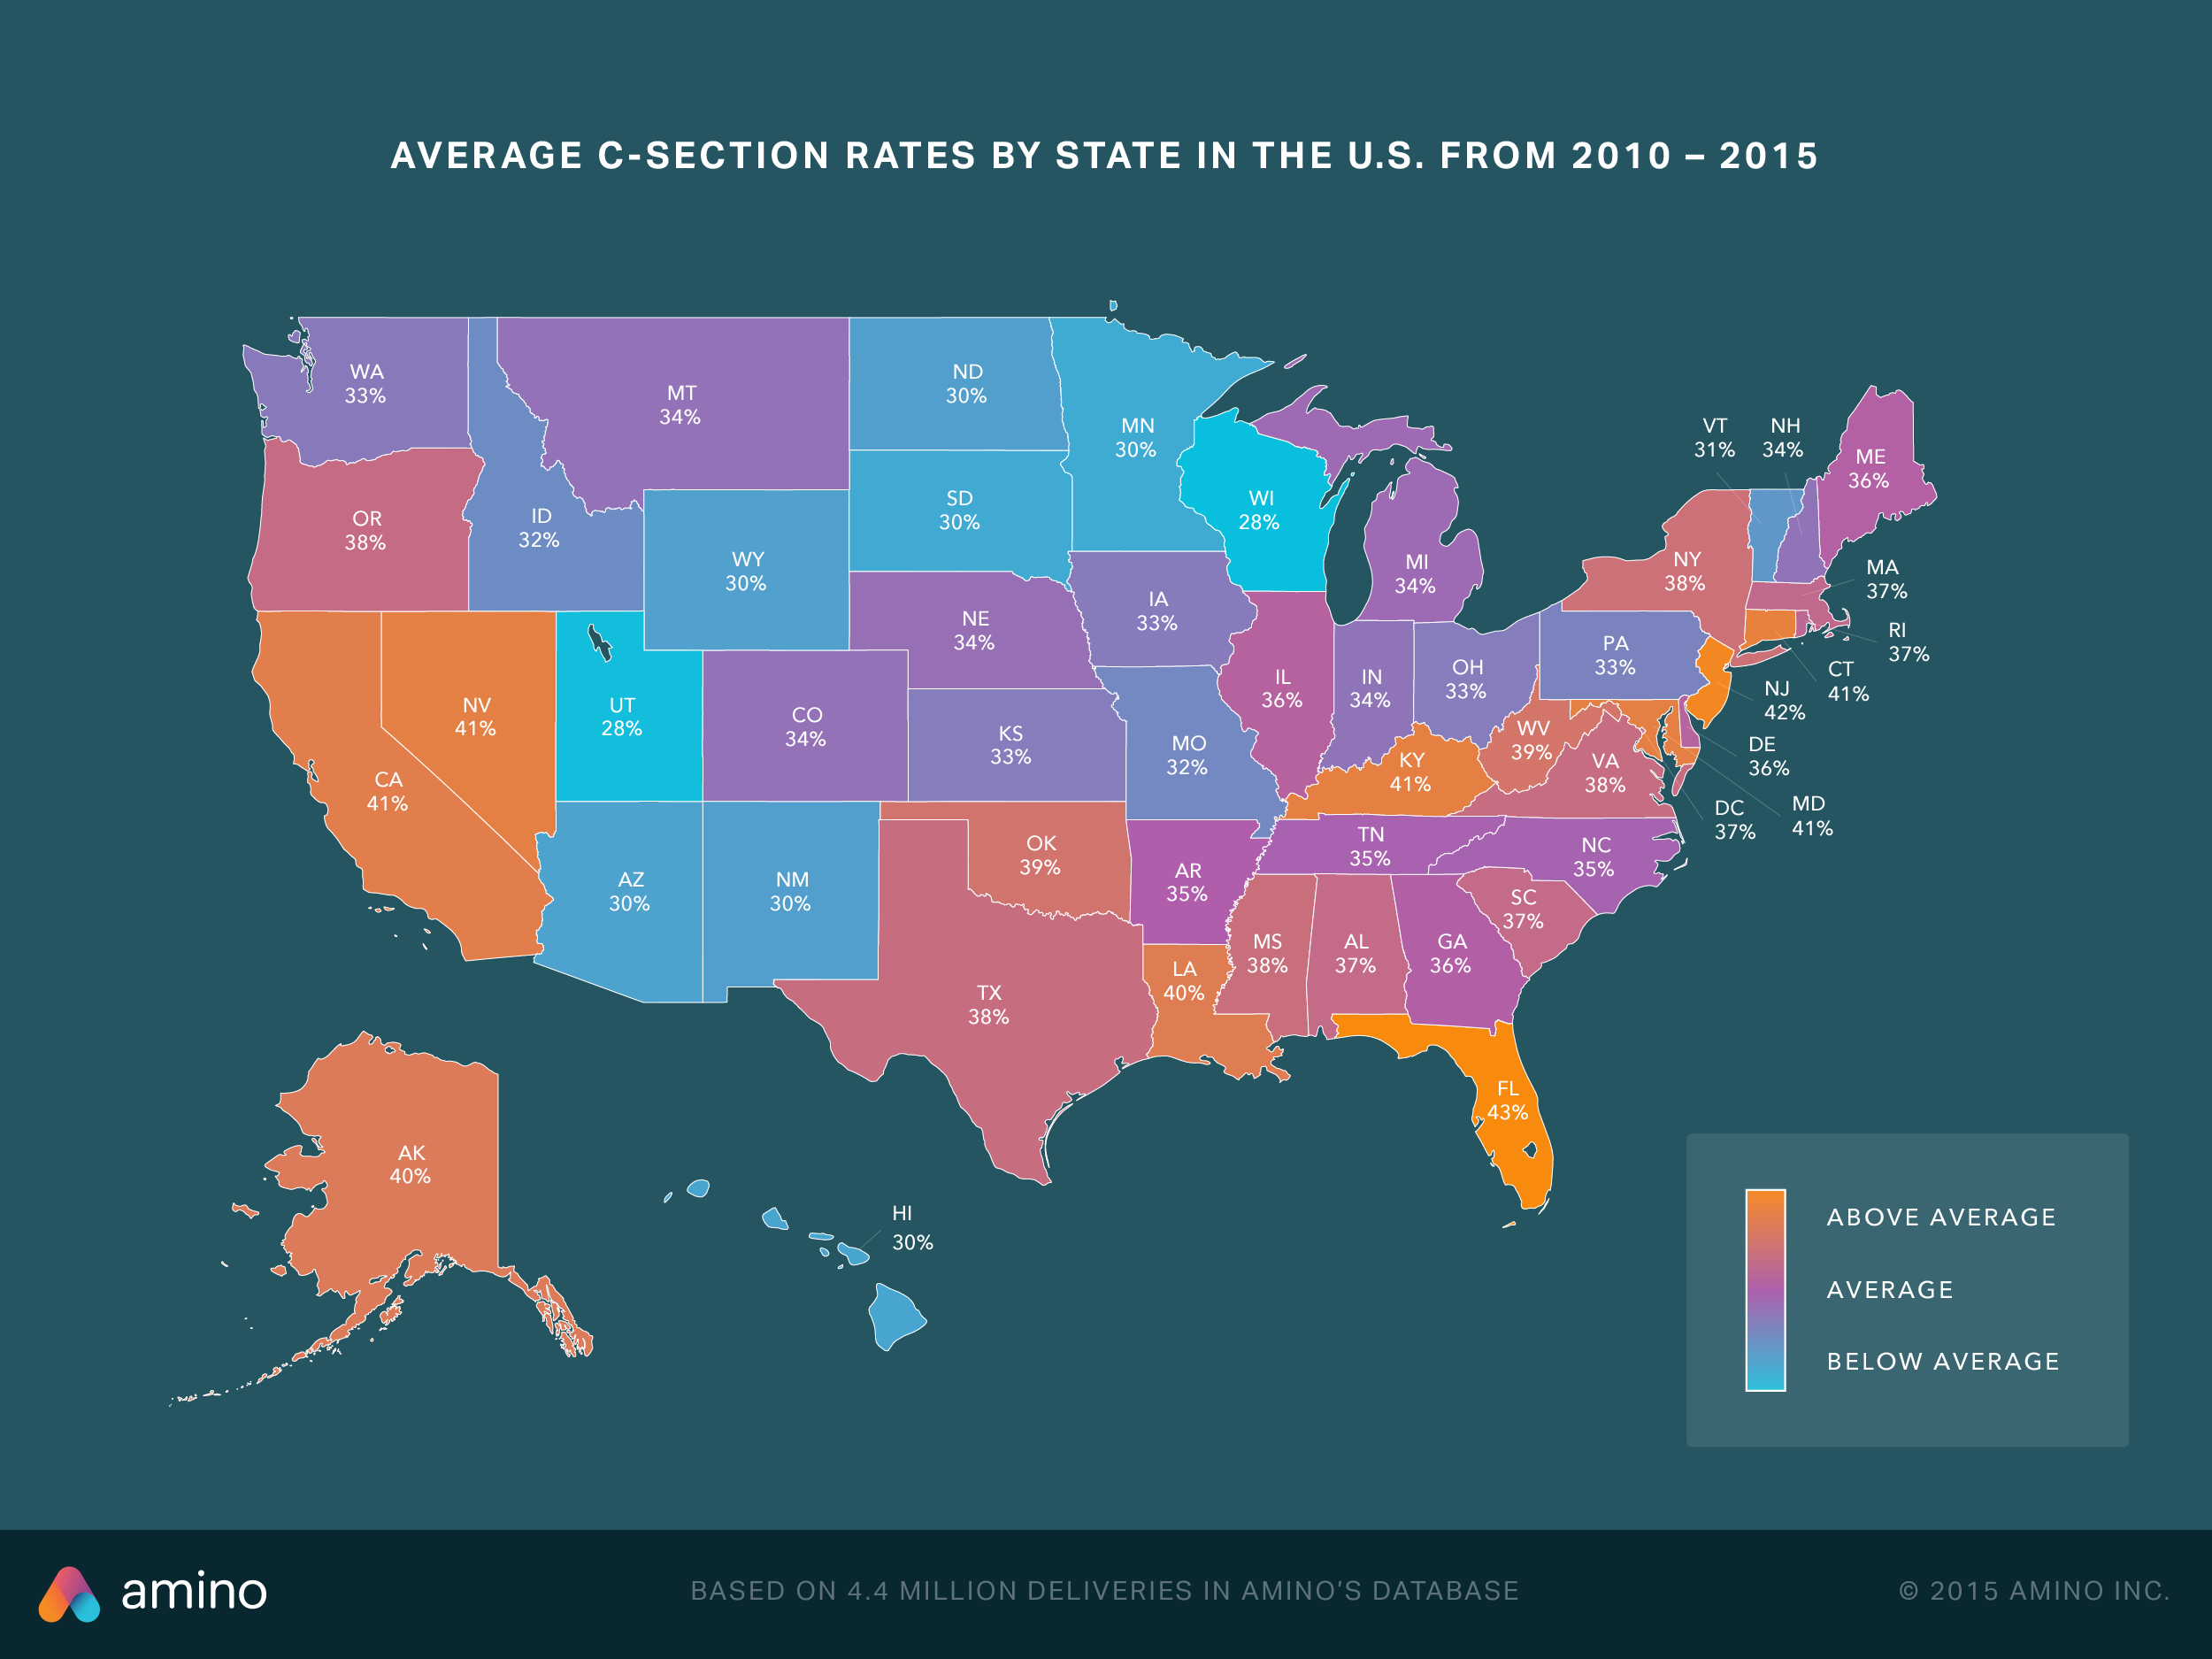 C-section Rates by State